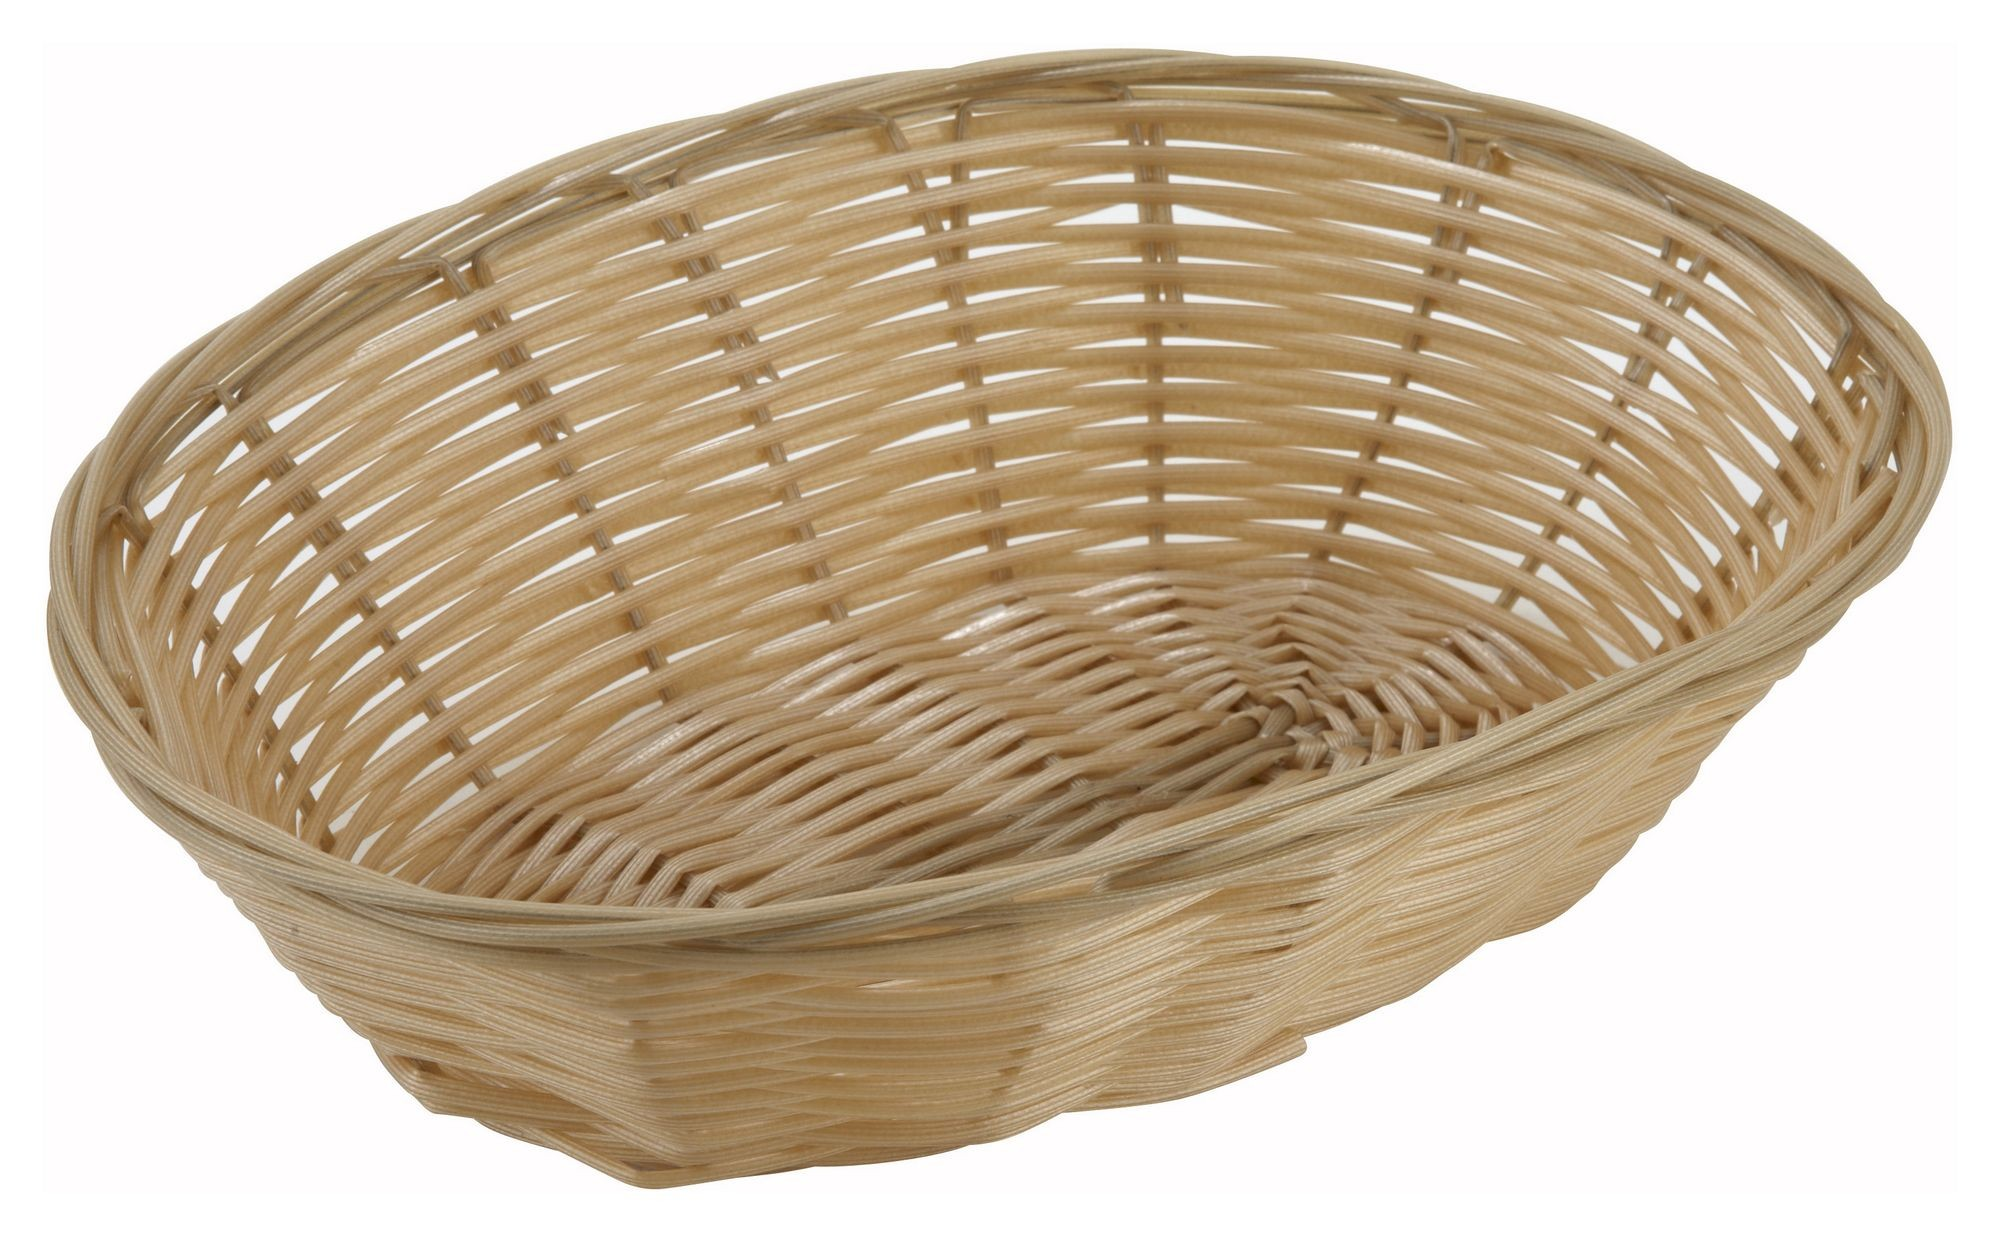 "Winco pwbn-9v Oval Natural Woven Basket 9-1/2"" x 6-1/2"" x 2-3/4"""